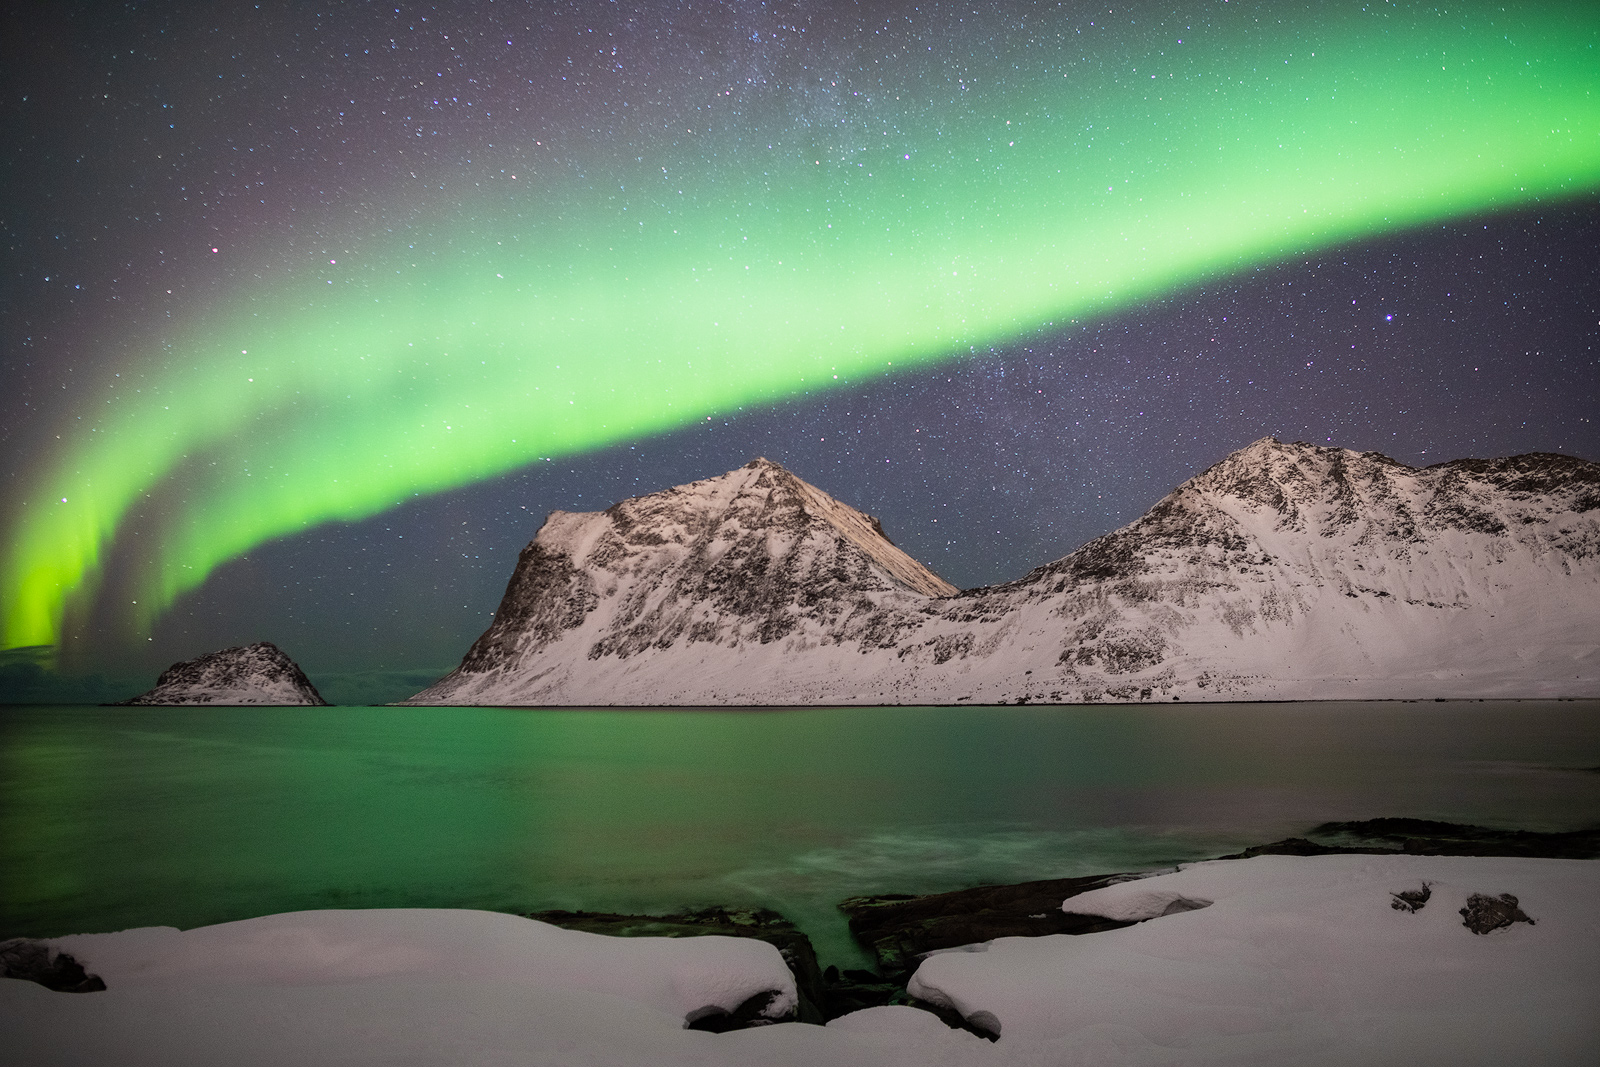 2019, aurora, borealis, europe, haukland beach, landscape, lofoten, night, northern lights, norway, scandinavia, snow, vestvågøy, winter, photo